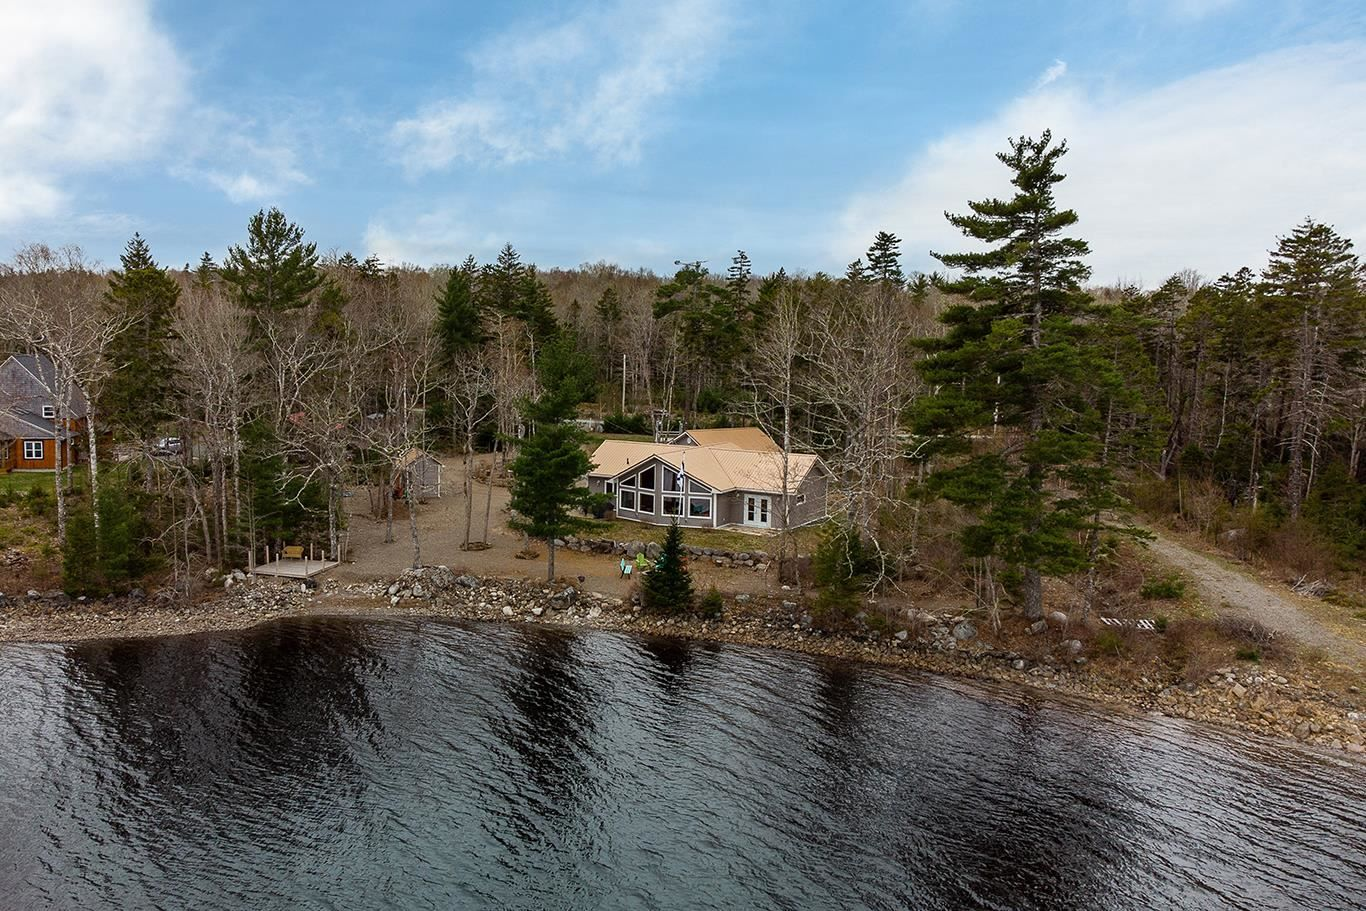 Main Photo: 519 Kill Dog Cove Road in Parkdale: 405-Lunenburg County Residential for sale (South Shore)  : MLS®# 202111106